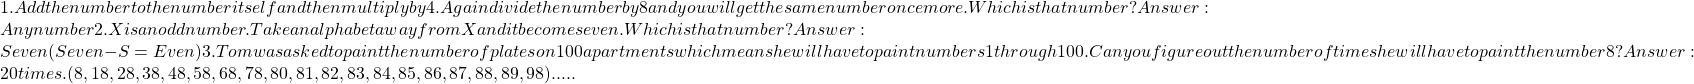 1. Add the number to the number itself and then multiply by 4. Again divide the number by 8 and you will get the same number once more. Which is that number?Answer: Any number2. X is an odd number. Take an alphabet away from X and it becomes even. Which is that number?Answer: Seven (Seven-S=Even)3. Tom was asked to paint the number of plates on 100 apartments which means he will have to paint numbers 1 through 100. Can you figure out the number of times he will have to paint the number 8?Answer: 20 times. (8, 18, 28, 38, 48, 58, 68, 78, 80, 81, 82, 83, 84, 85, 86, 87, 88, 89, 98).....